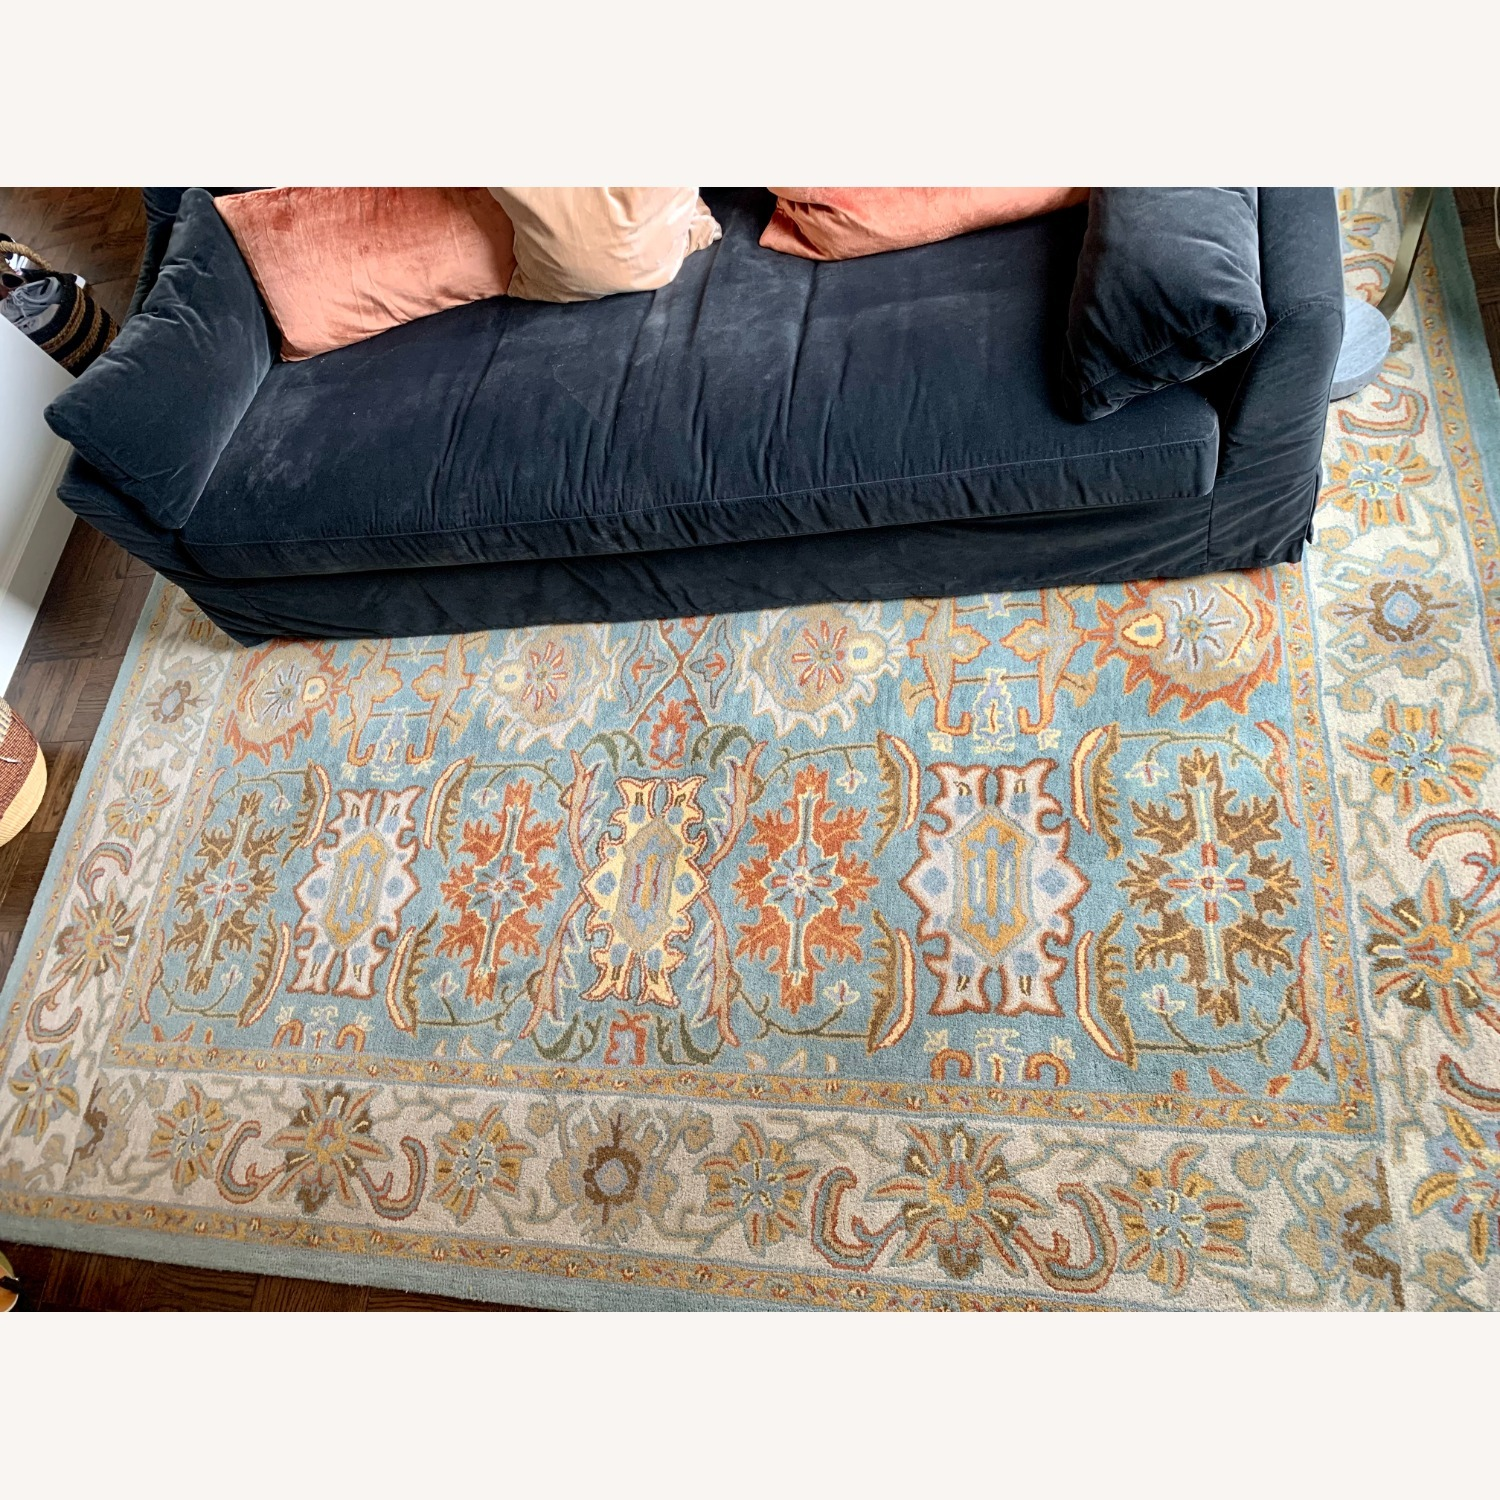 Safavieh Heritage Collection Blue Rug - image-2